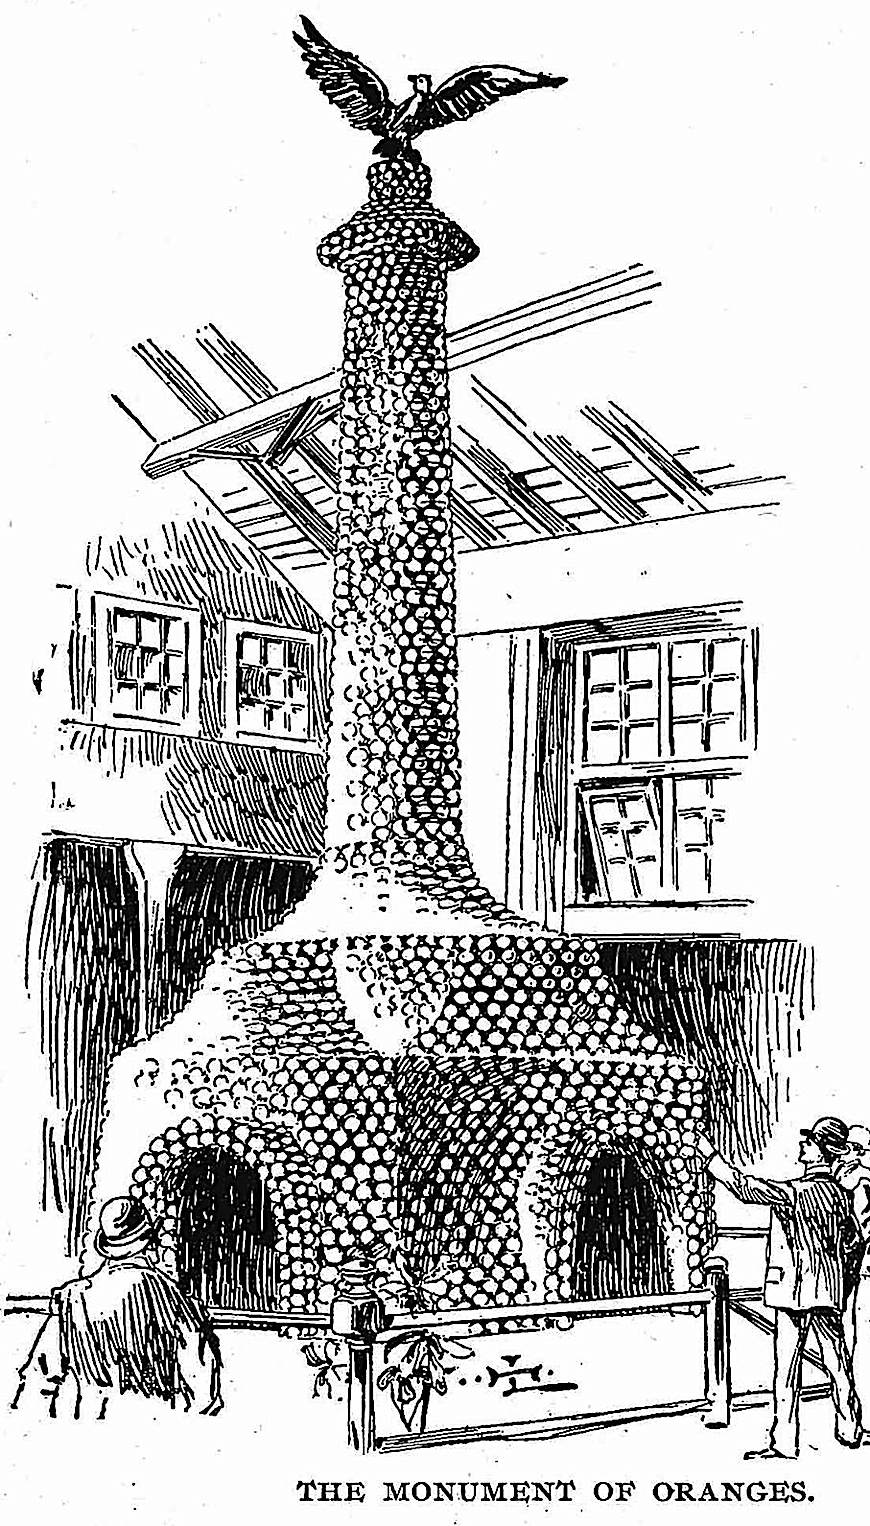 the Monument of Oranges at the 1893 Chicago World's Fair, an illustration